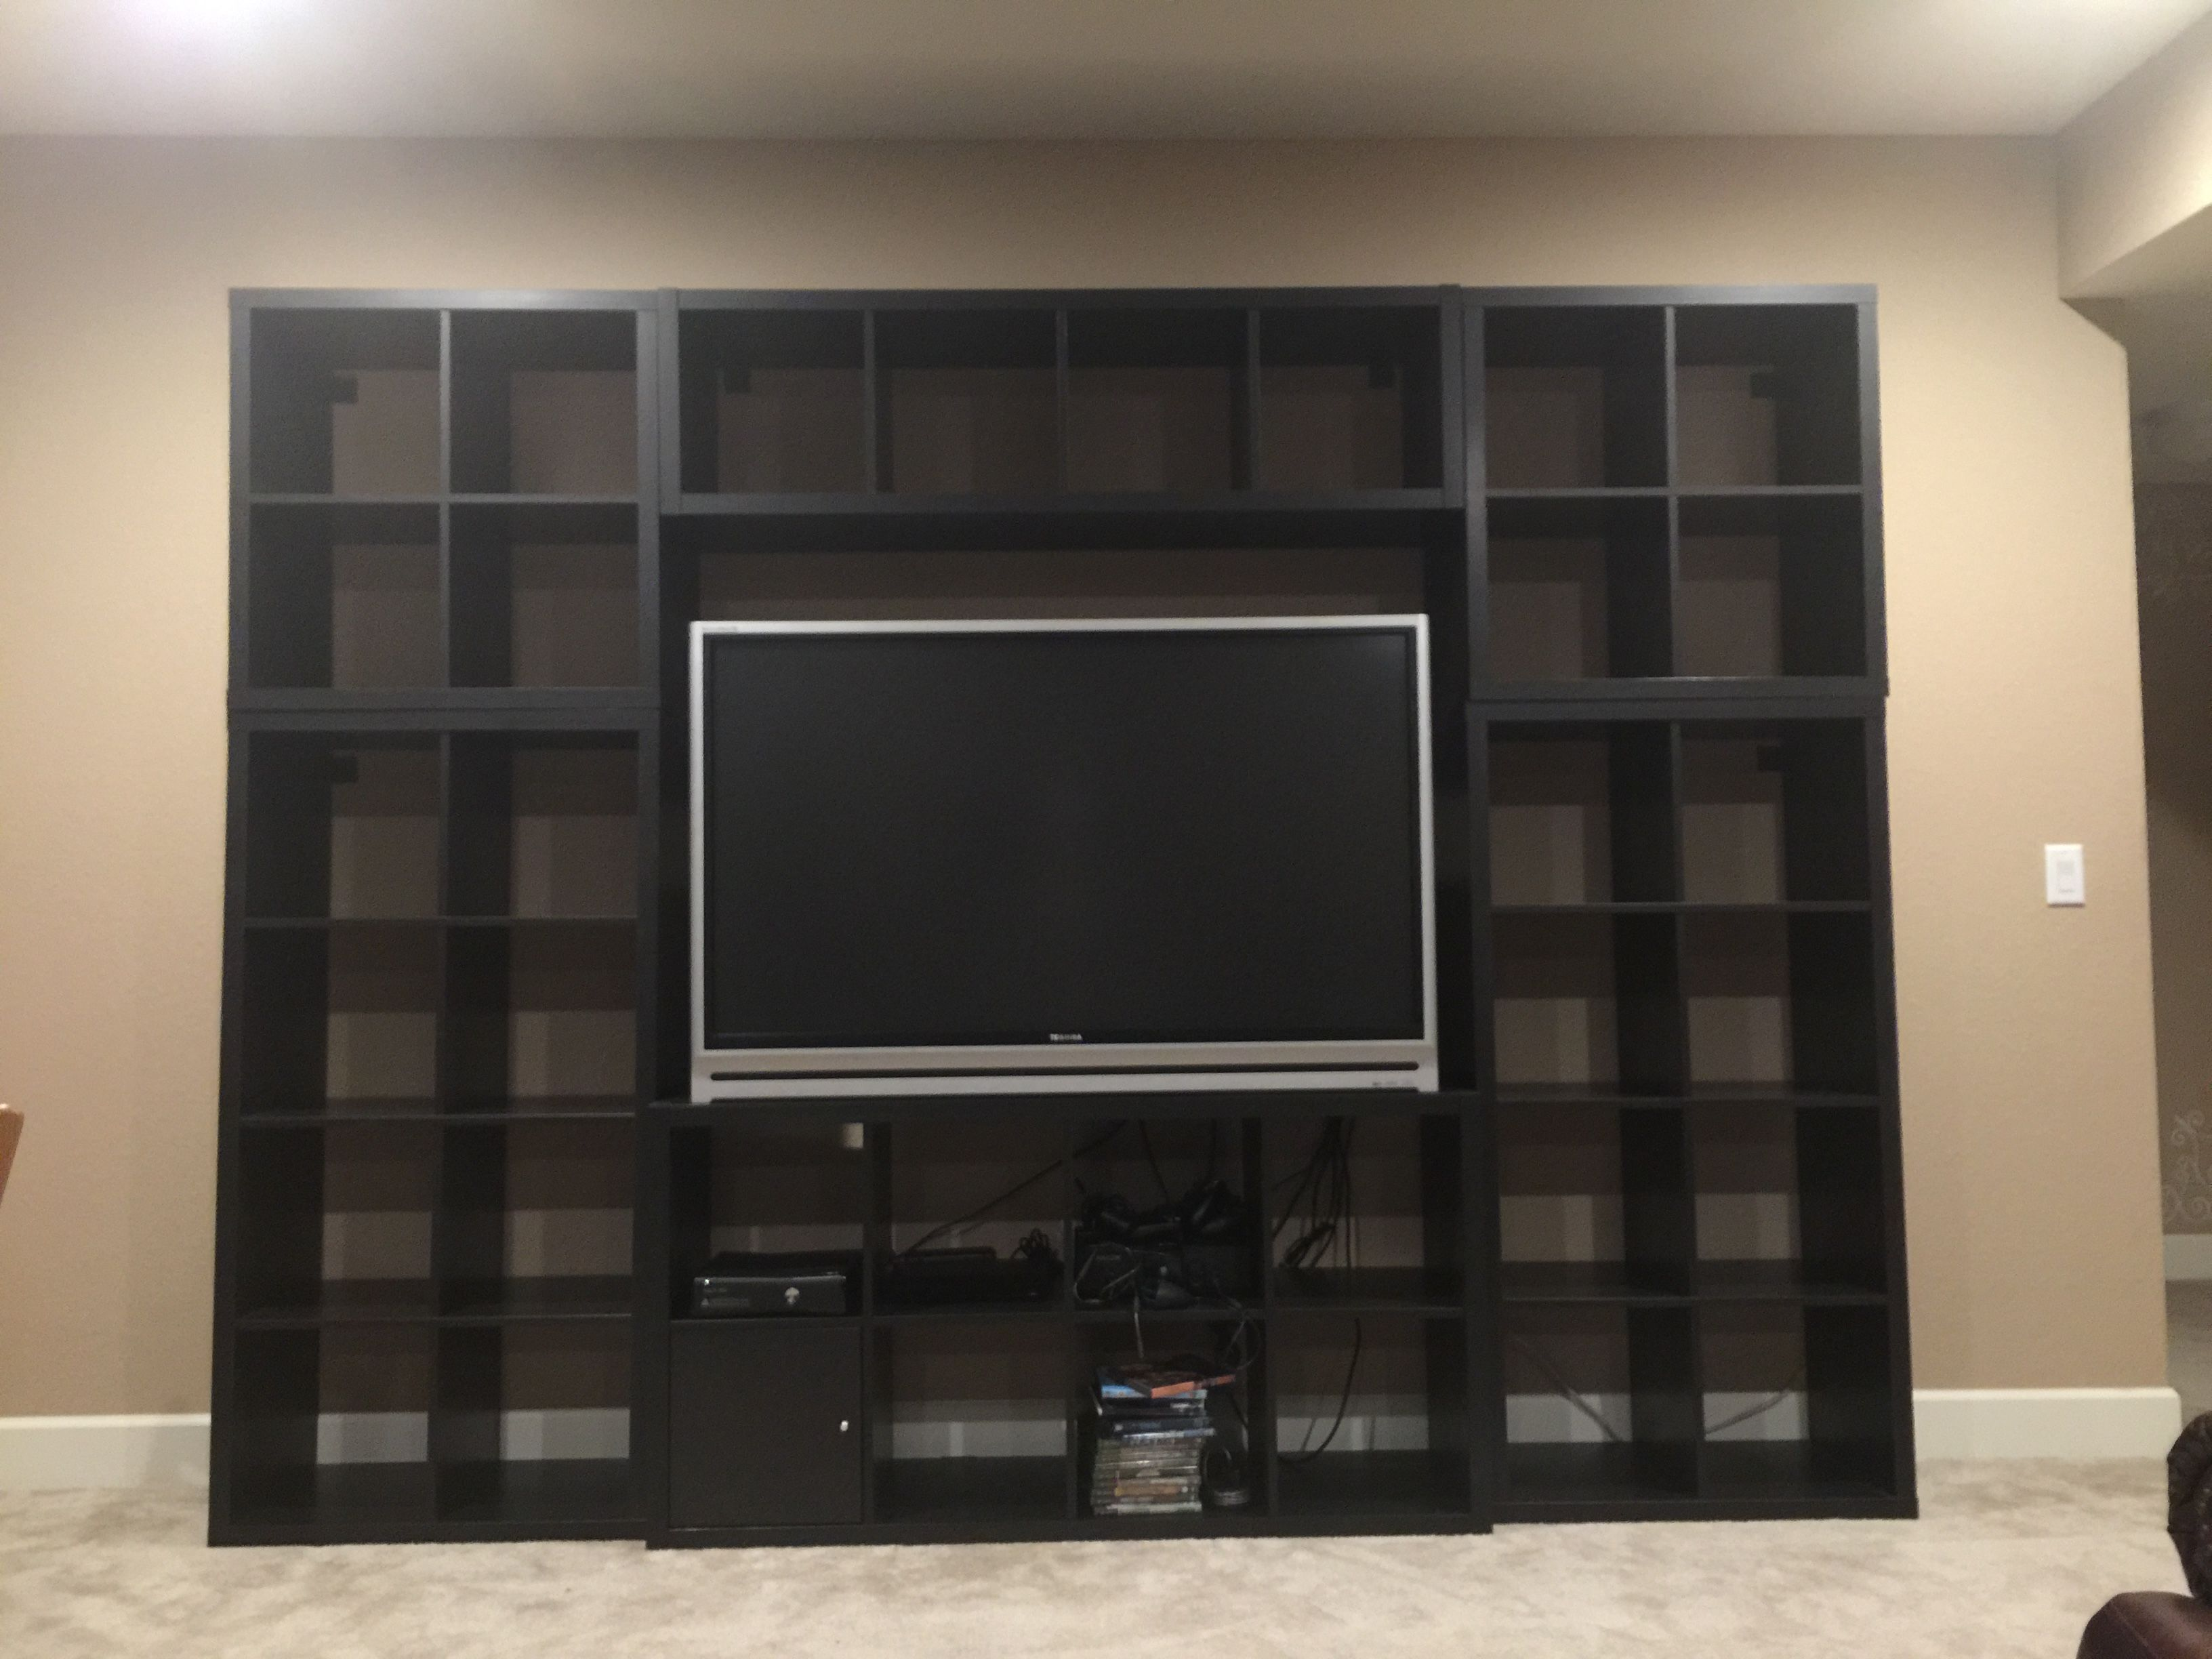 These Are Kallax Ikea Shelves Put Together And Anchored To The Wall To Create An Entertainment Center Next Adding The Tv In Bedroom Home Theater Rooms Kallax